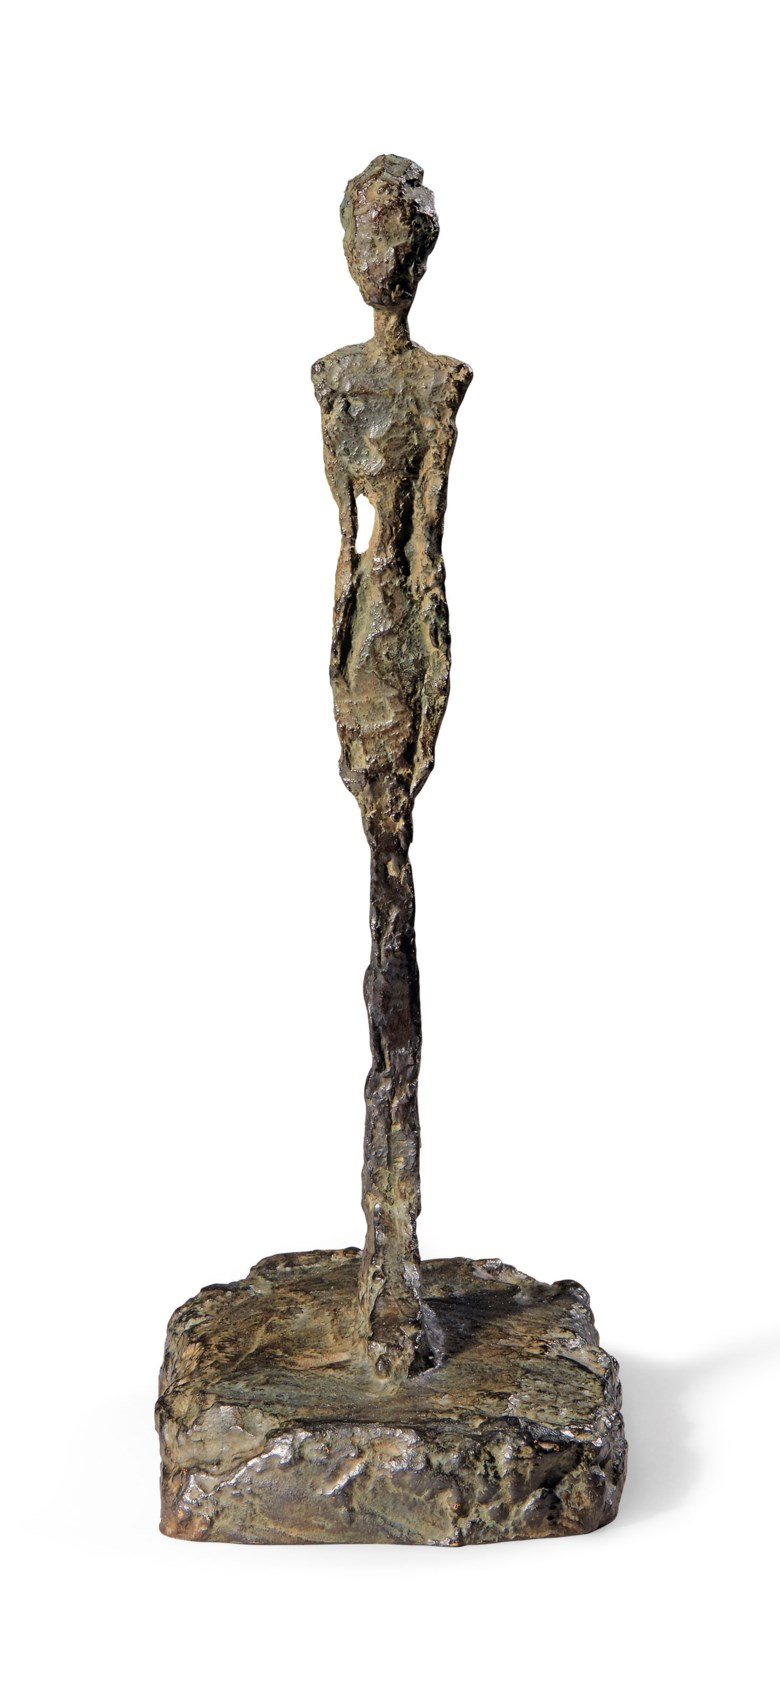 Alberto Giacometti (1901-1966), Figurine de Londres I, 1965 (Guss 1966). 25,9 x 9,1 x 13,6 cm. Sold for CHF 1,812,500 on 18 September 2018 at Christie's in Zurich